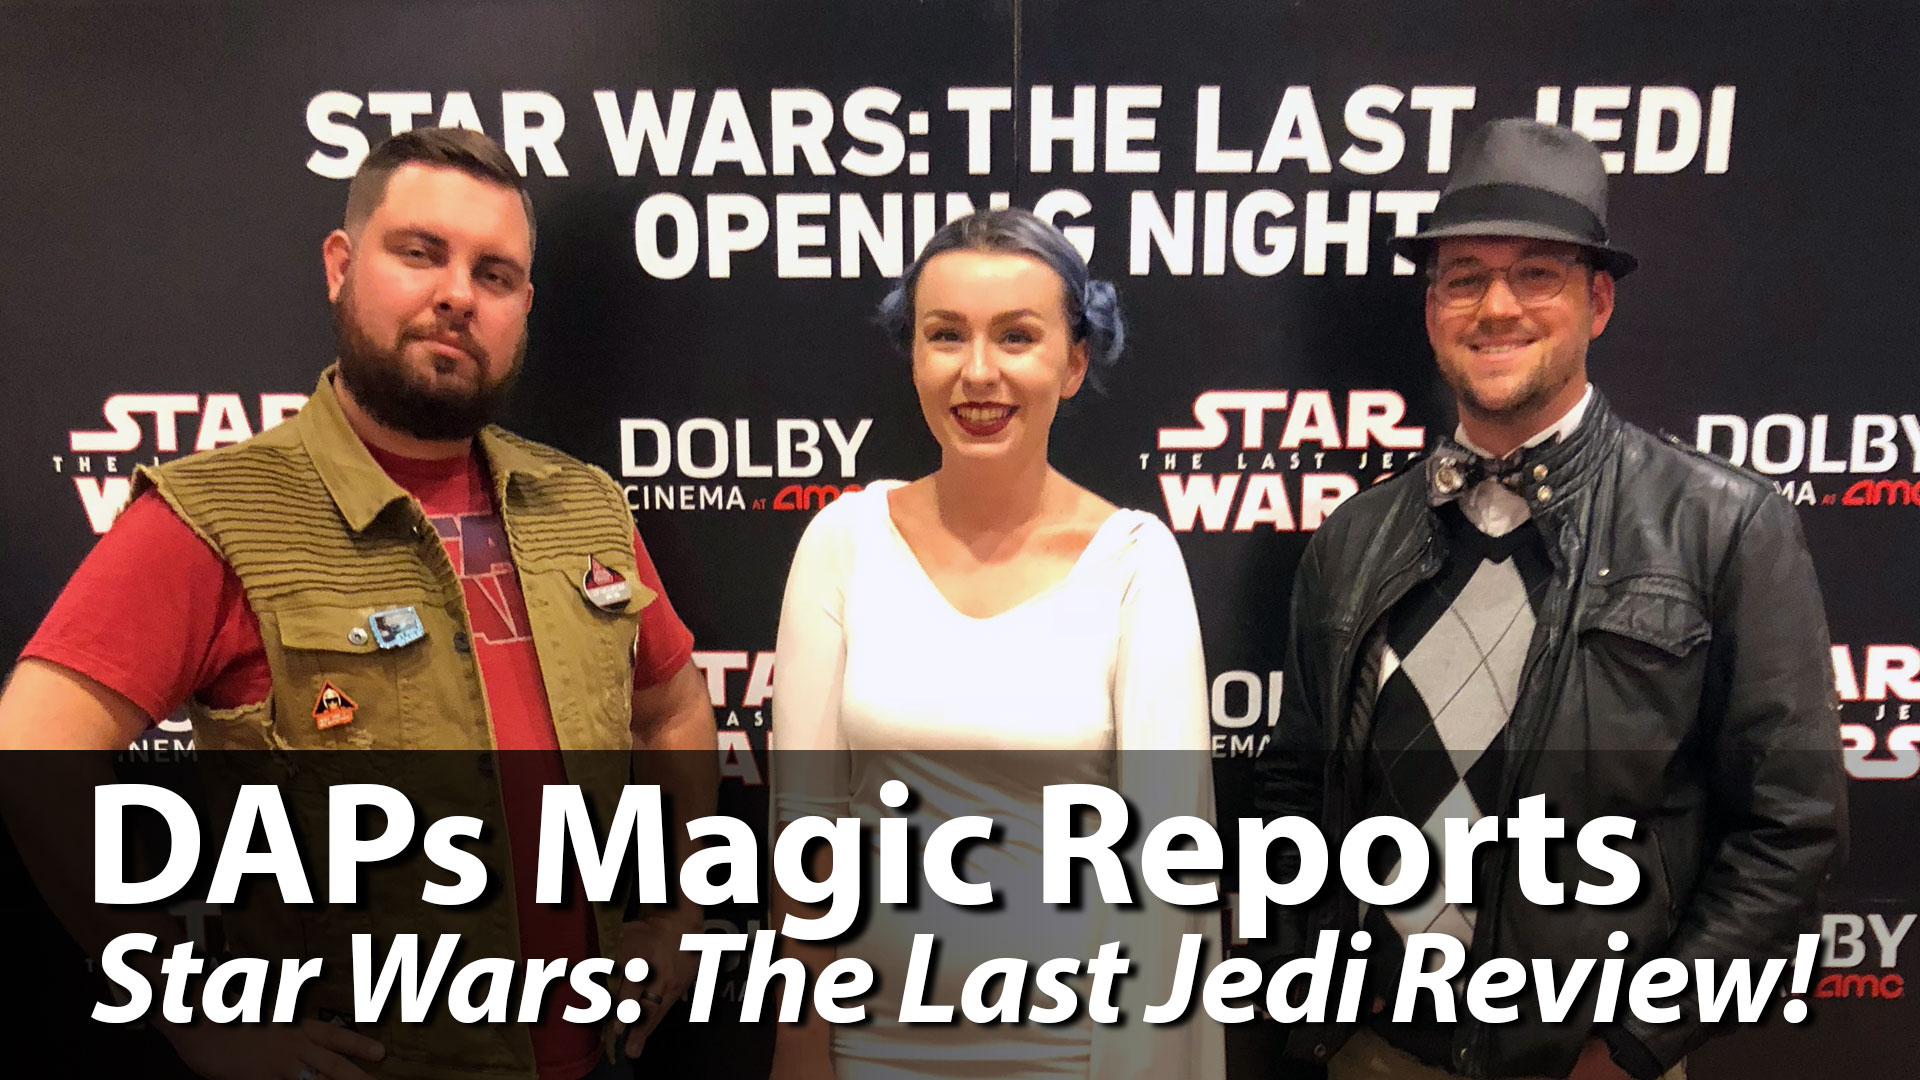 Star Wars: The Last Jedi Review (Spoilers) – DAPs Magic Reports